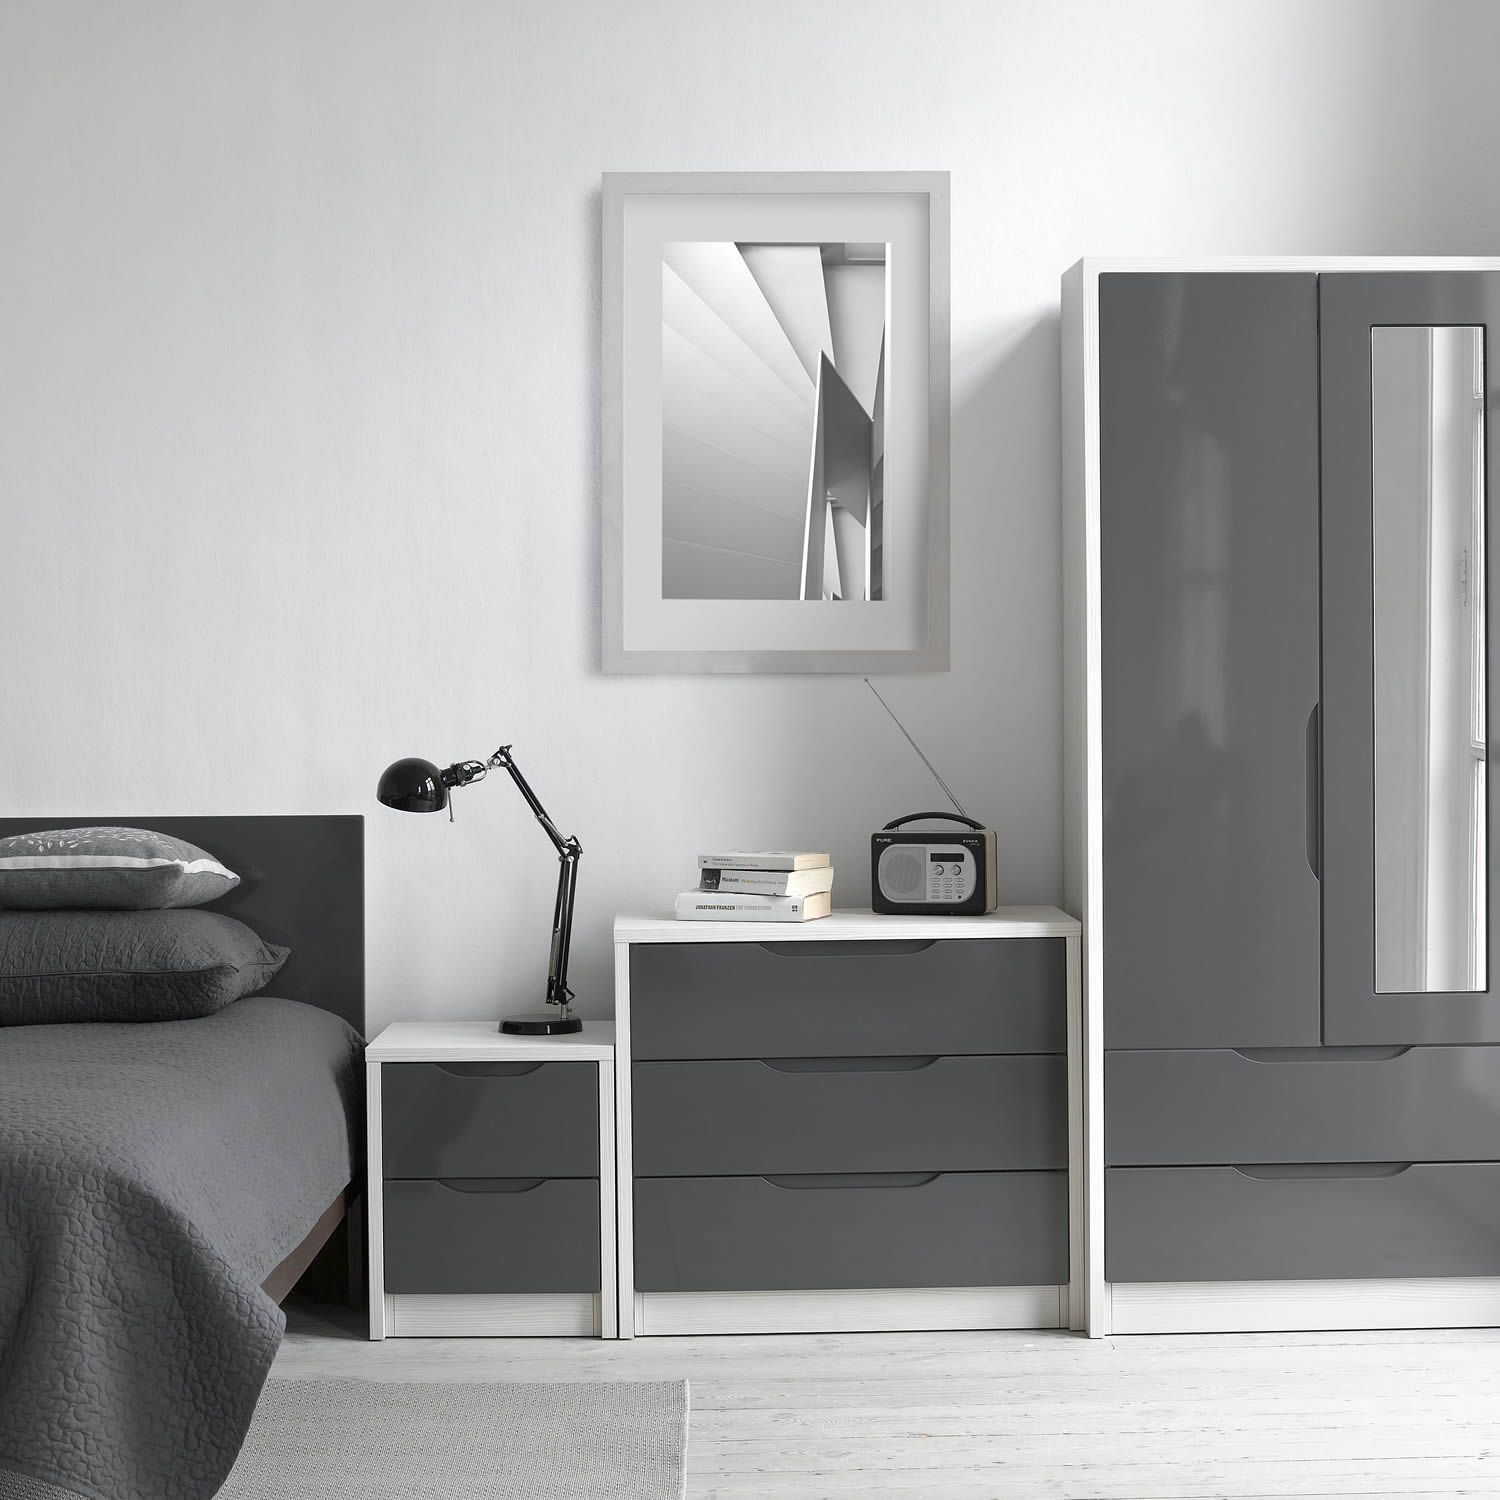 Next Mirrored Bedroom Furniture Avola Grey Gloss 2 Door 2 Drawer Combi Wardrobe With Mirror Next